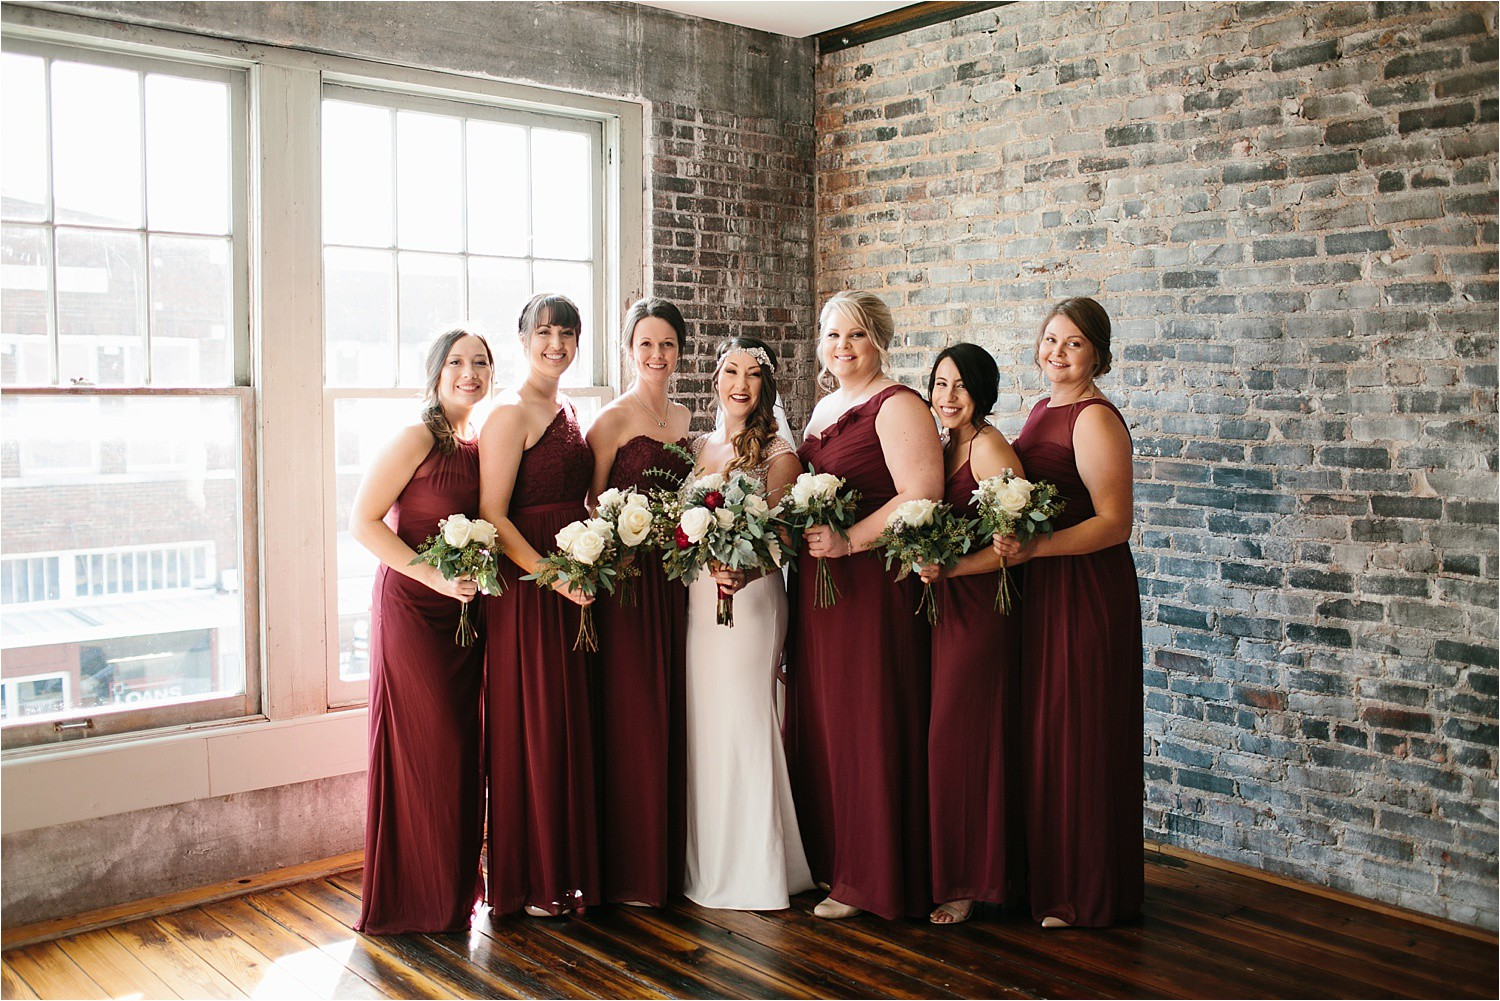 whittney-drew-__-an-intimate-wine-and-navy-wedding-in-an-industrial-venue-at-loft-123-in-paris-tx-by-north-texas-wedding-photographer-rachel-meagan-photography-_-032